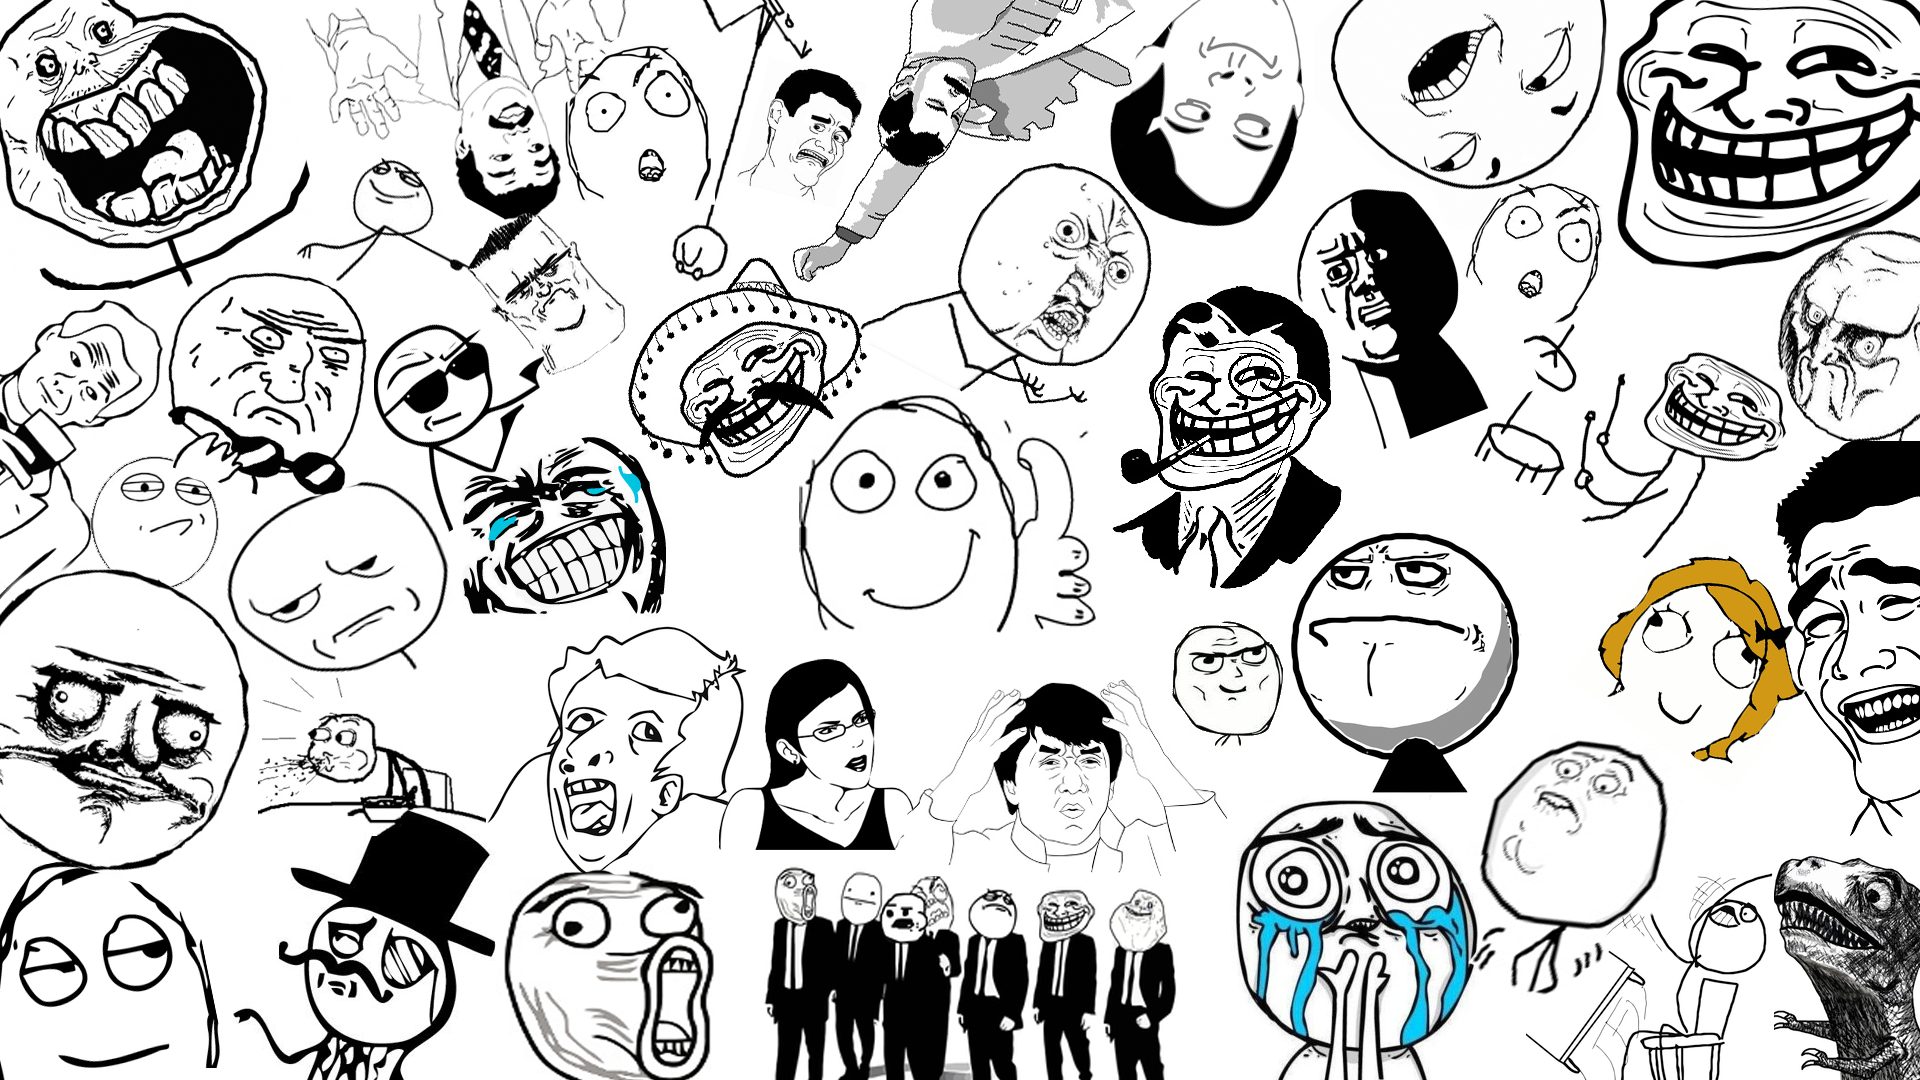 Download Meme Faces Wallpaper HD 2938 Full Size 1920x1080